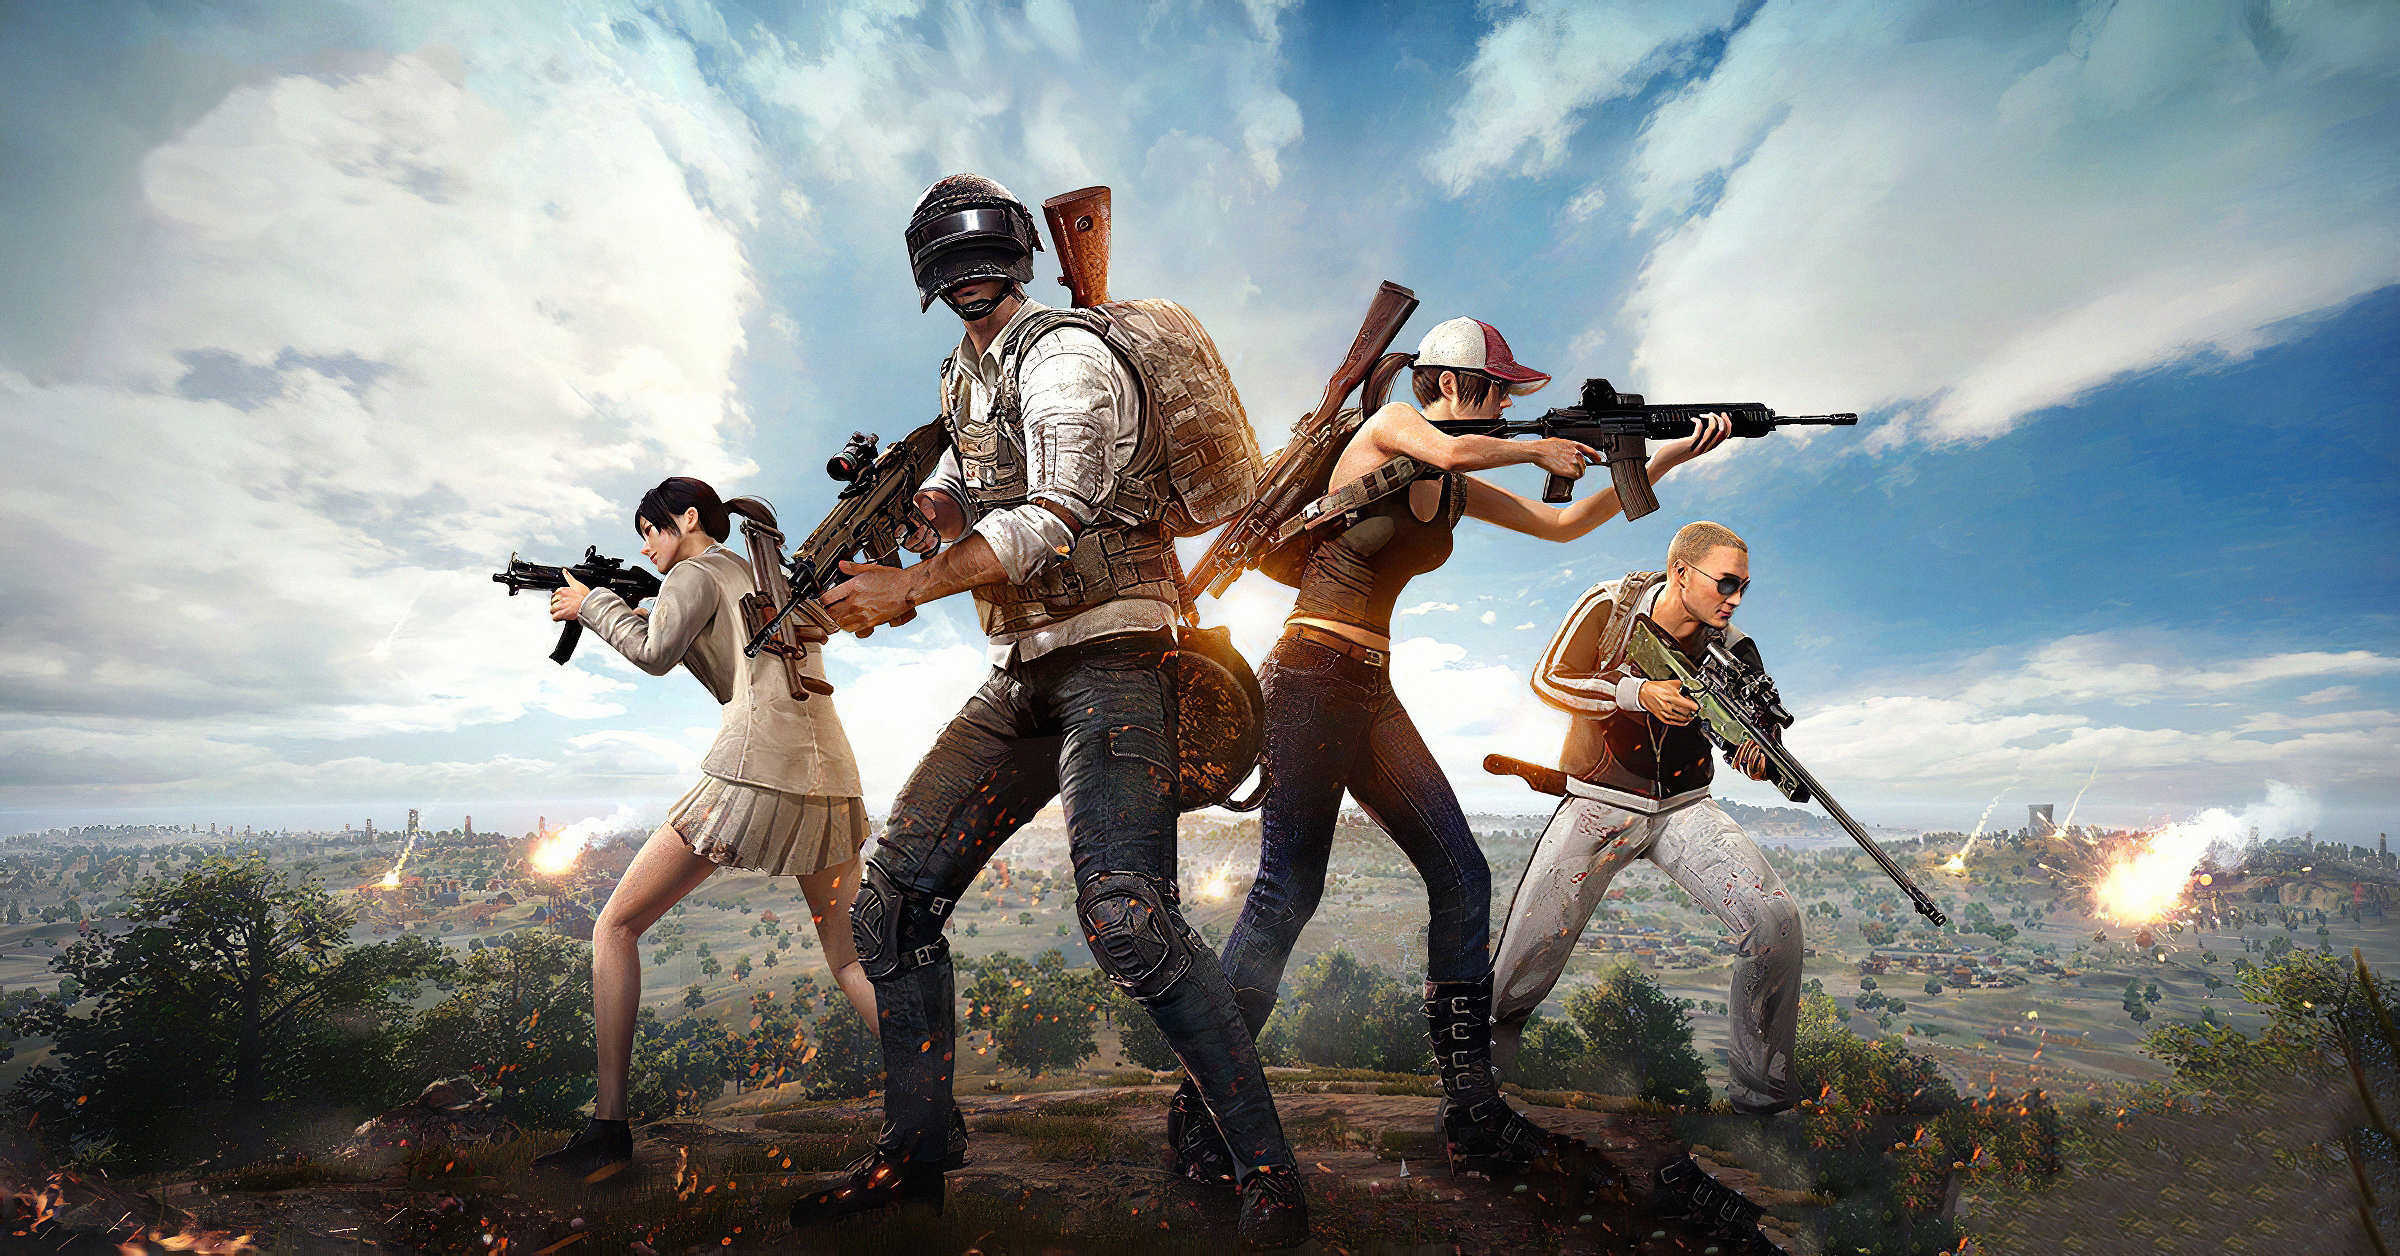 4k Ultra Hd 1610 Chachameow Pubg Wallpapers Games Wallpapers Team